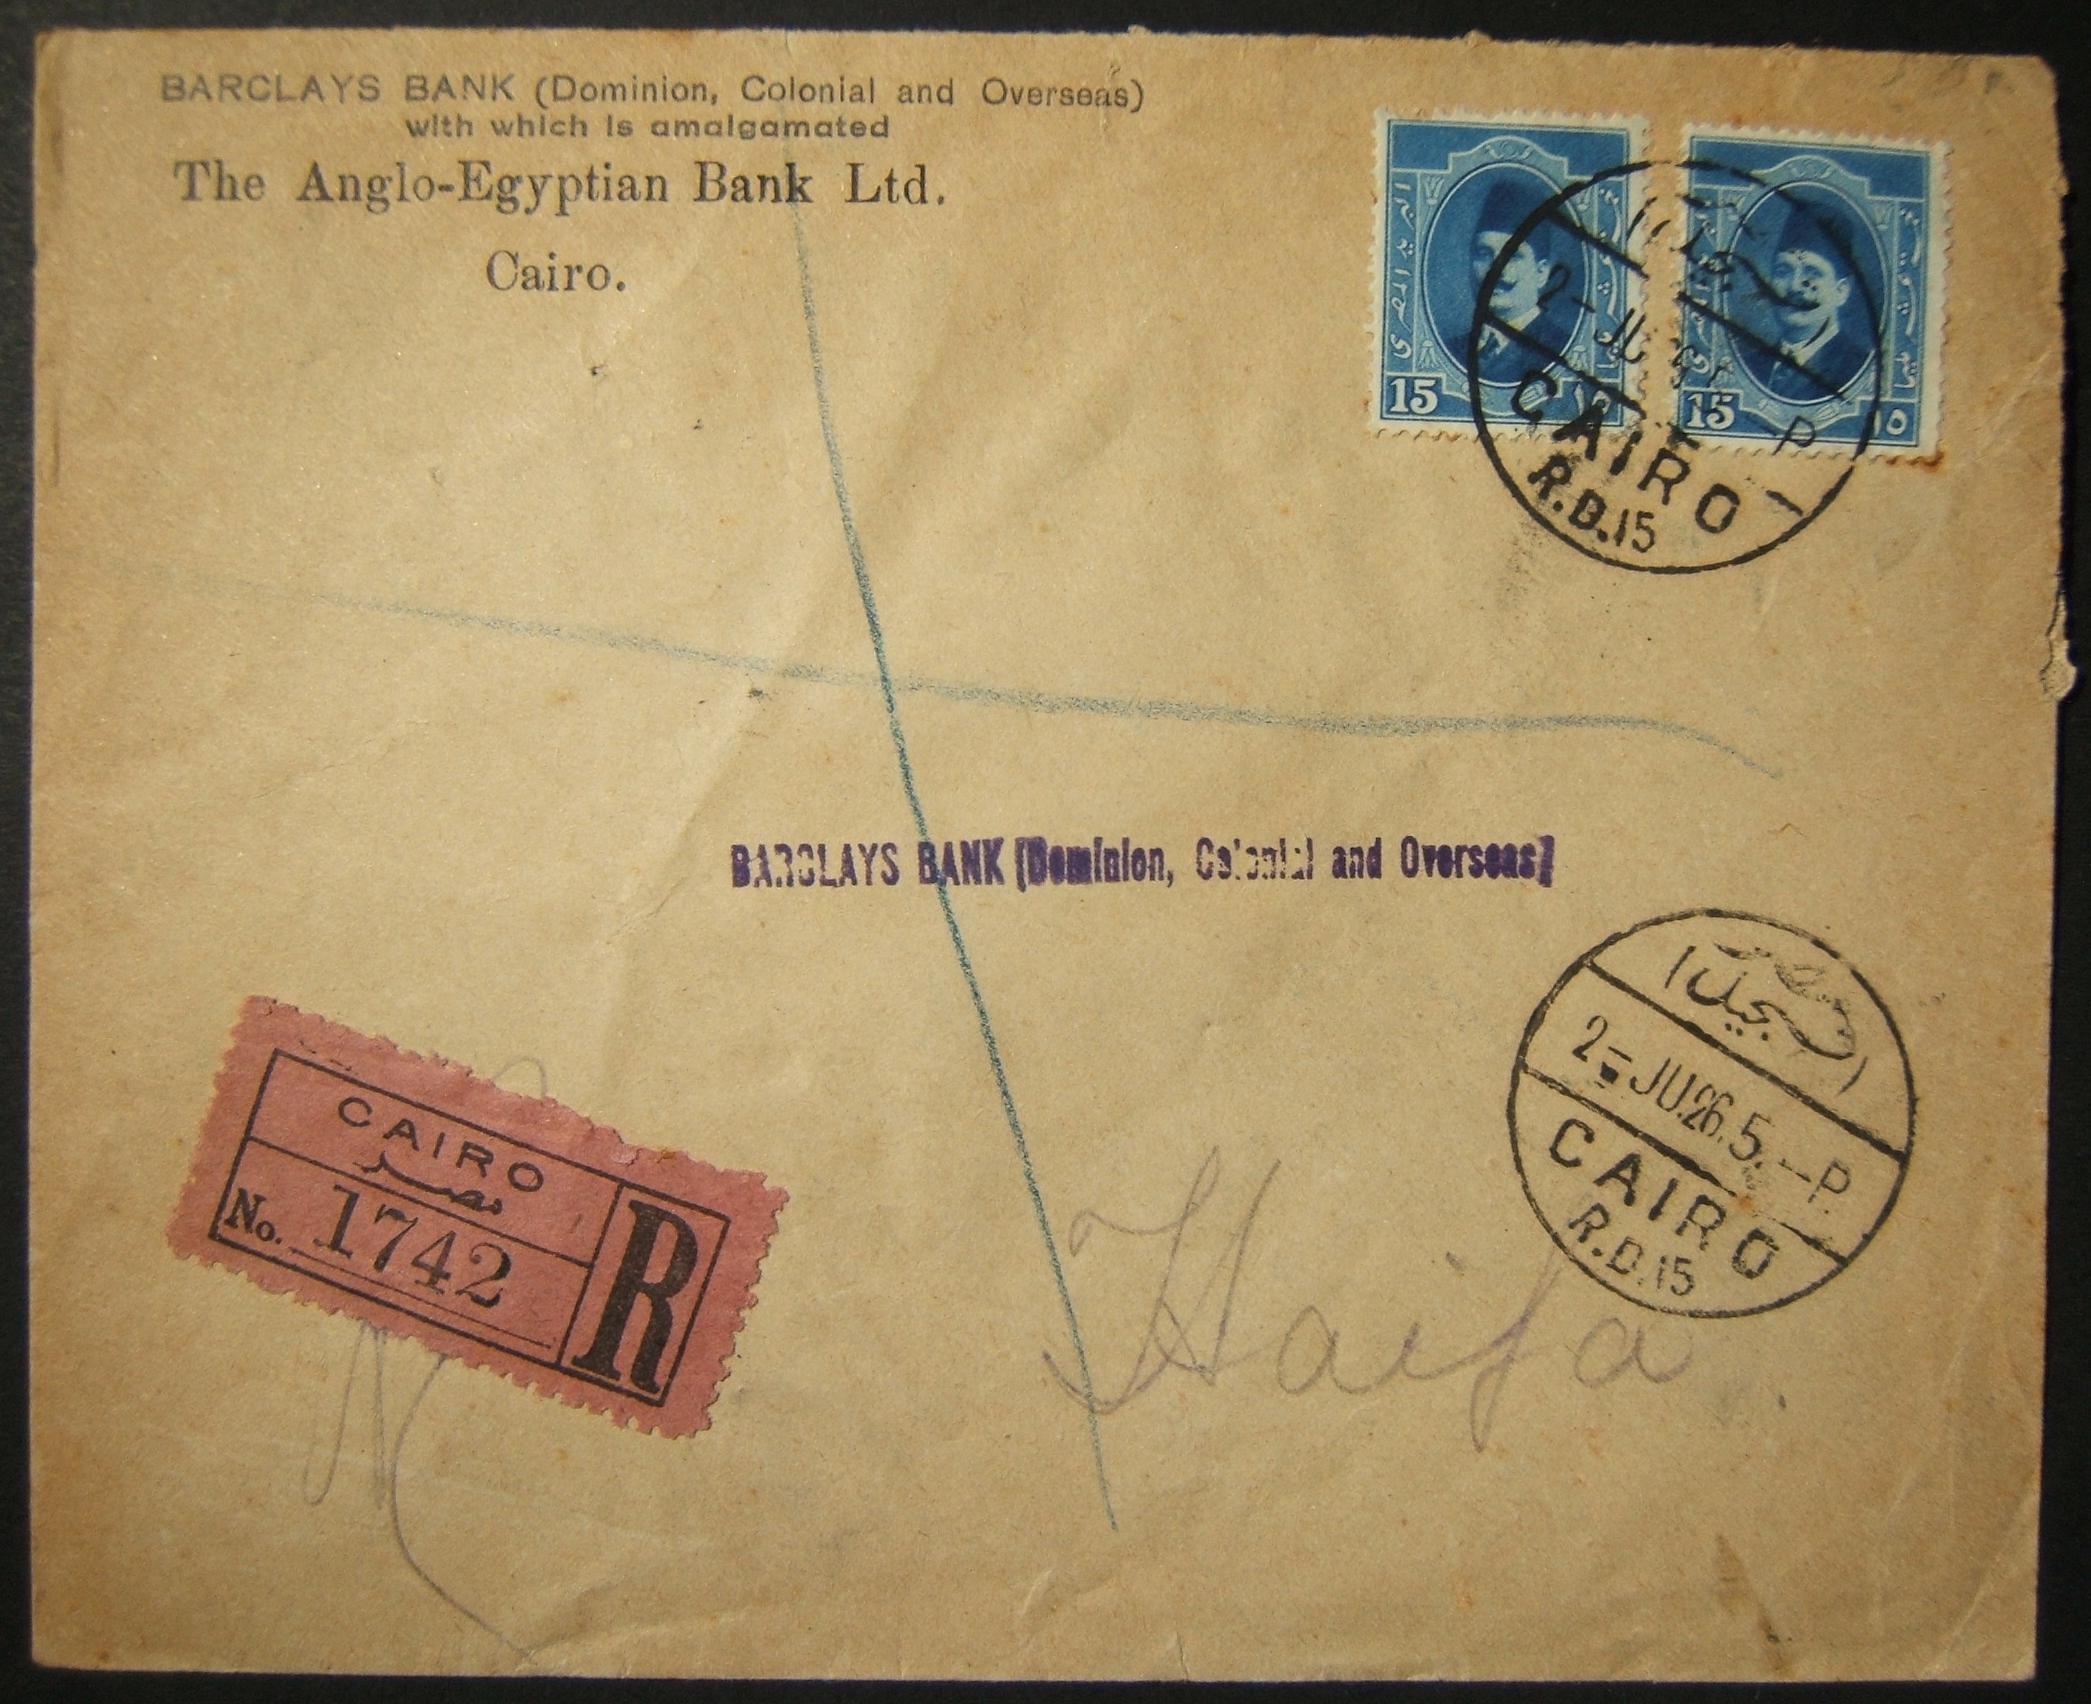 2 JUNE 1926 reg. comm cv on Barclays Bank business stationary ex CAIRO to HAIFA, franked 30pi and tied by full strike of Cairo RB15 pmk (and again in field); b/s REGISTERED HAIFA u